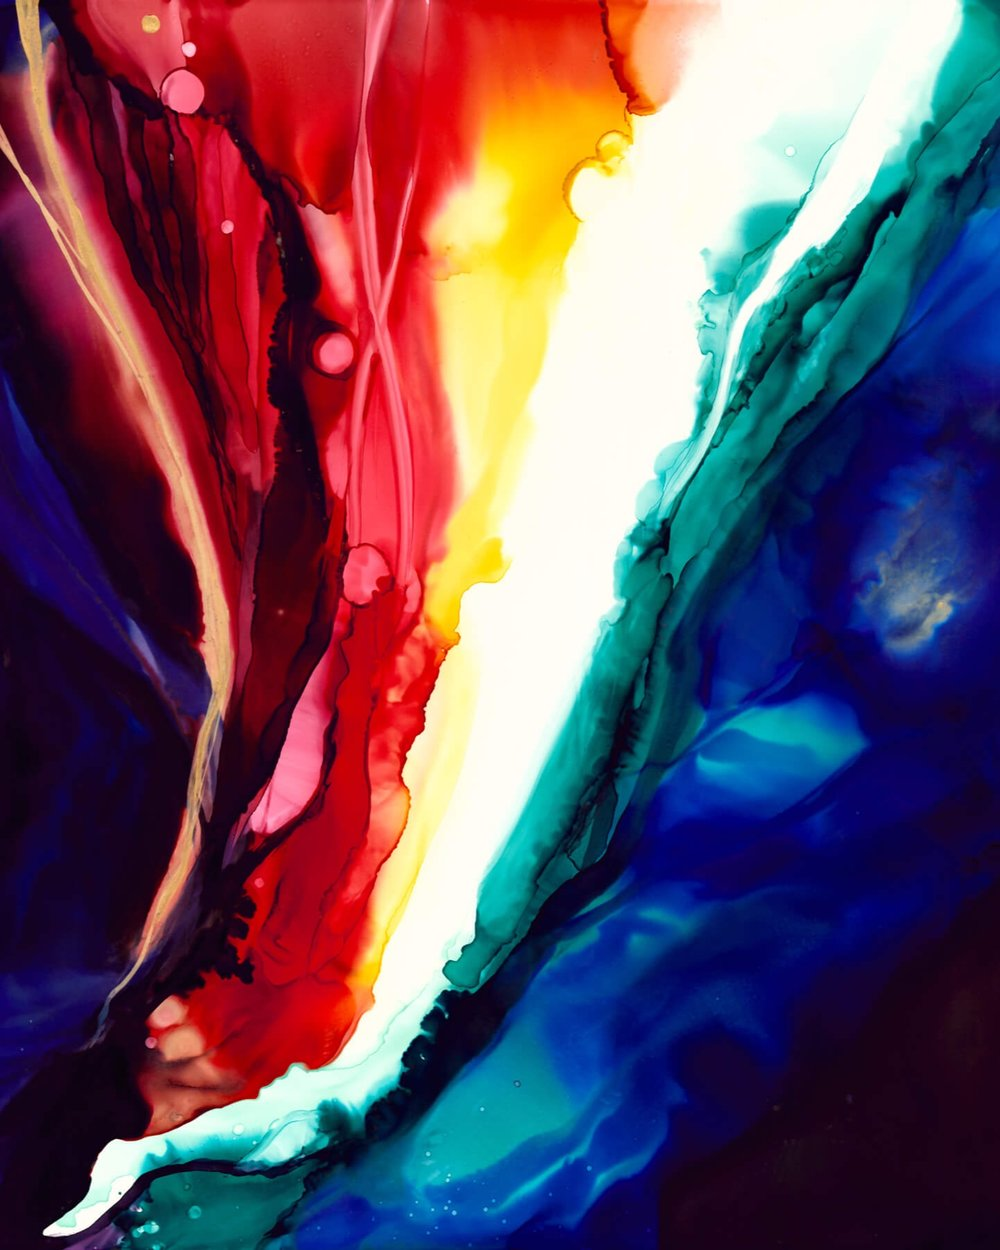 SYNESTHESIA COLLECTION  A continuously growing collection of visual music, including depictions of Radiohead, Moses Sumney, Animal Collective, and Shostakovich.